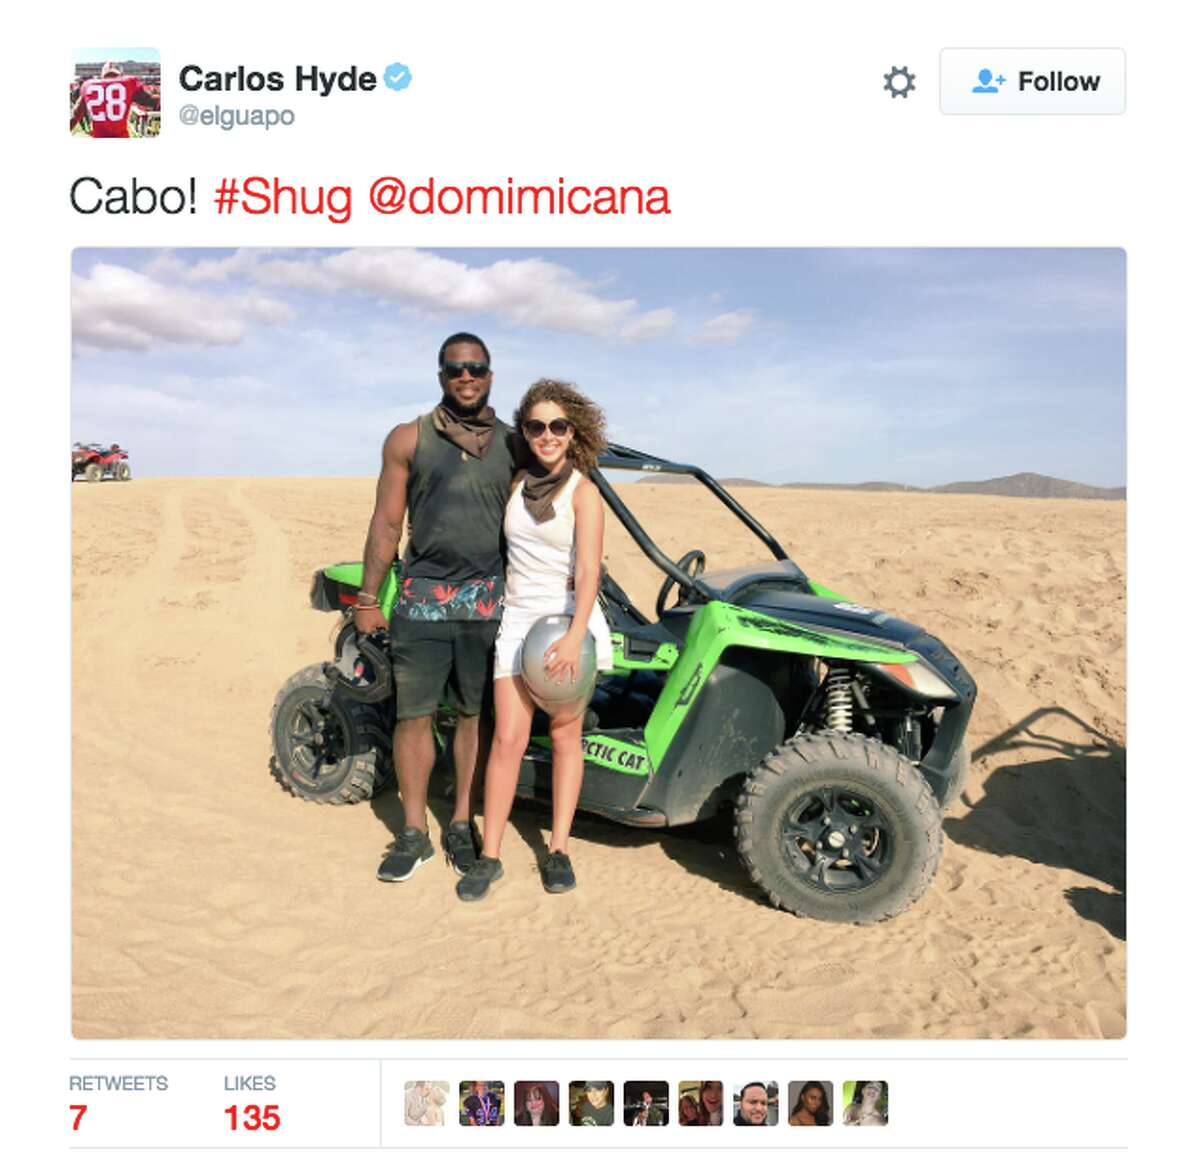 Running back Carlos Hyde spent time in Cabo.